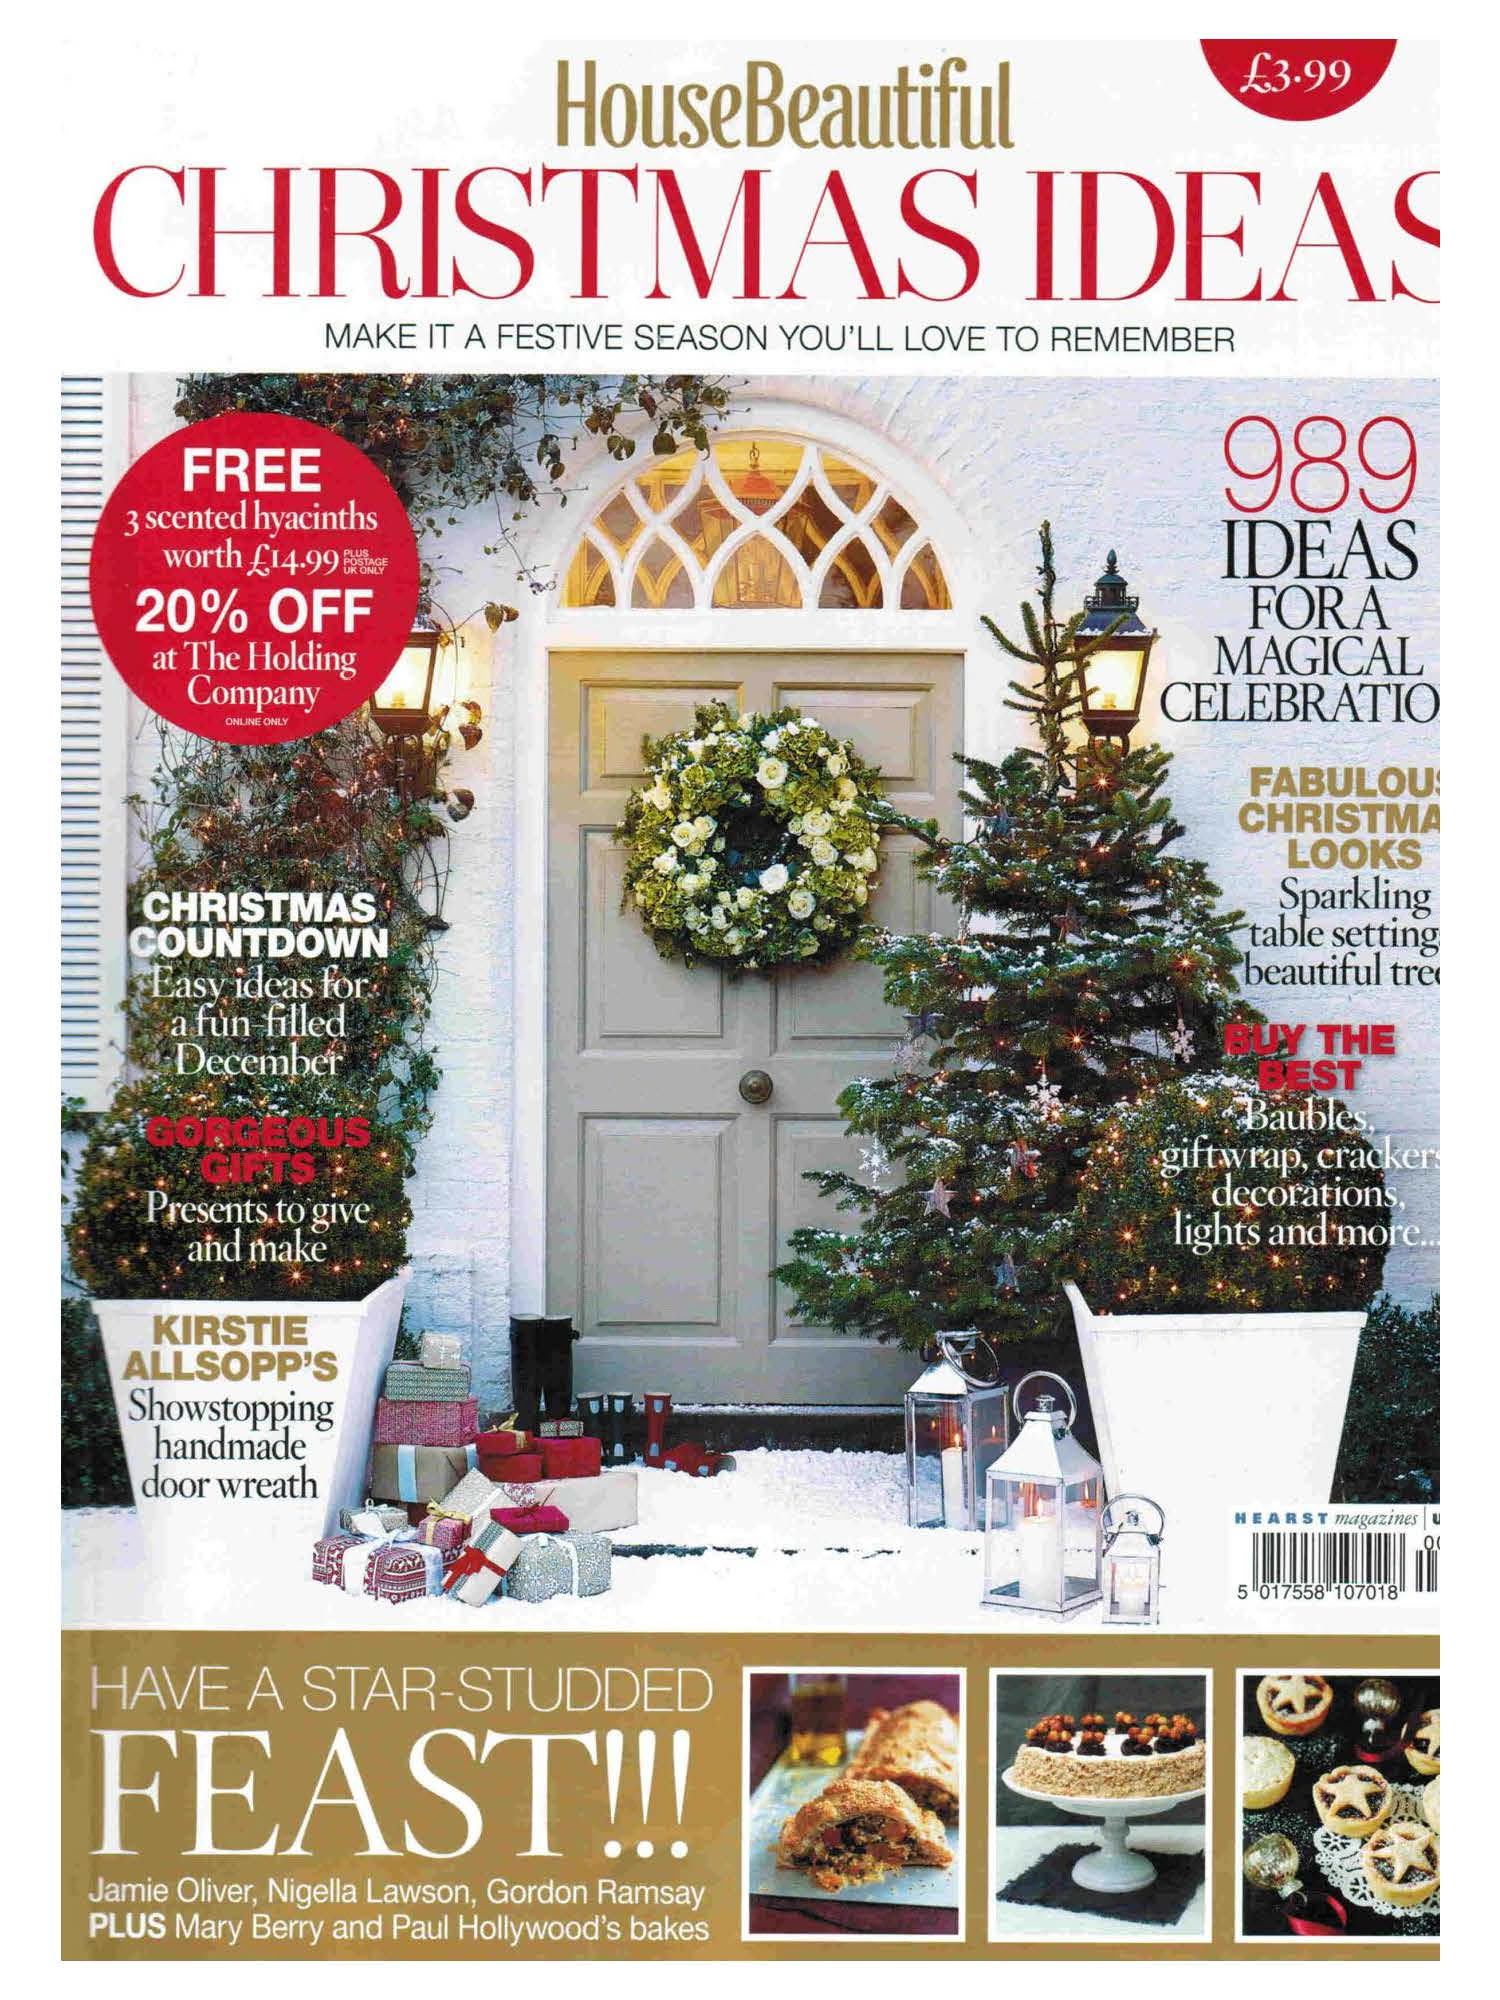 dog, dogs, style, magazine, press, editorial, house beautiful, christmas, house, home